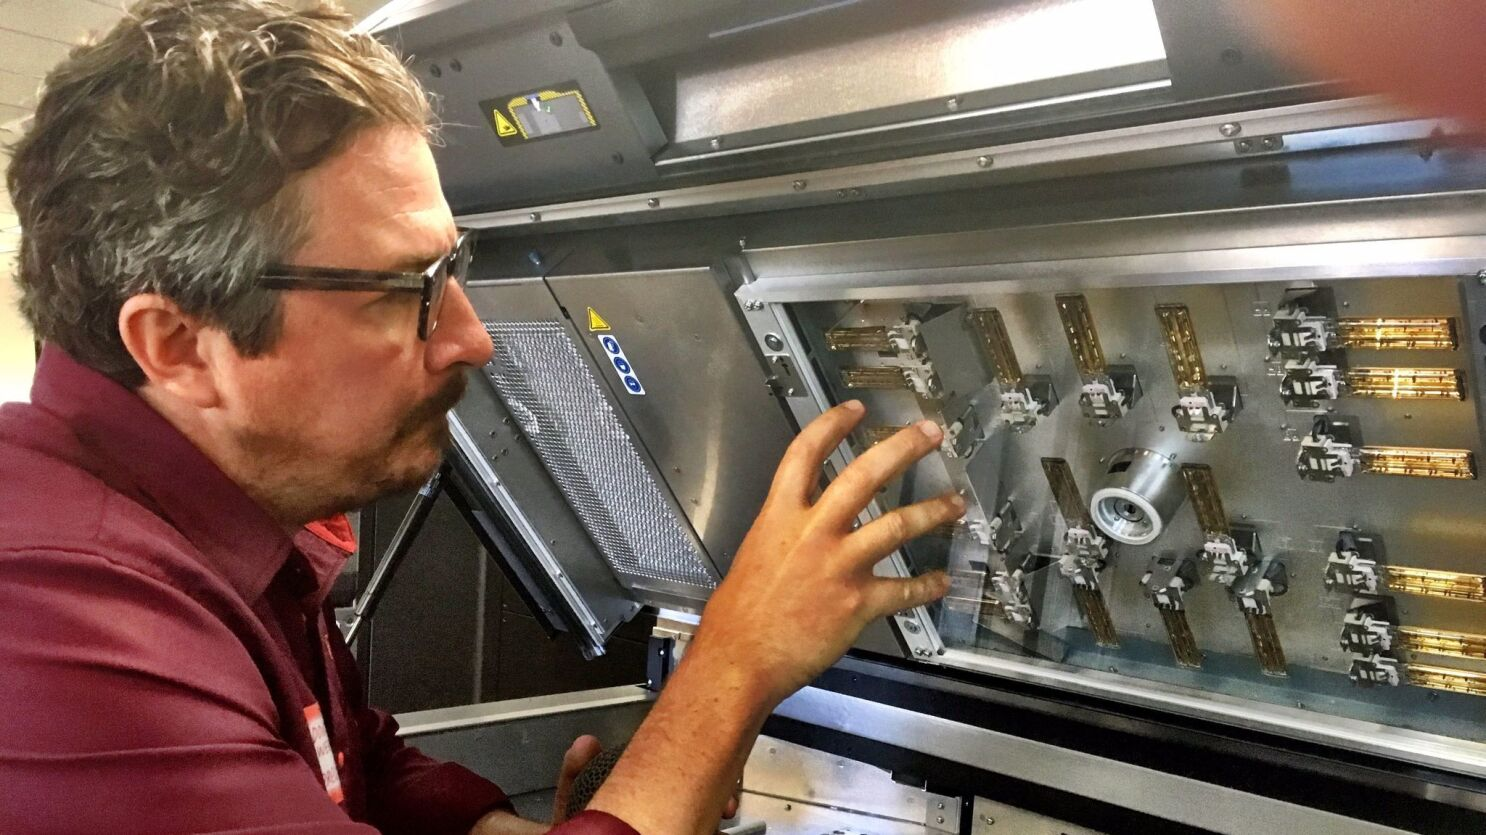 3D printing technology pushes deeper into manufacturing, enabling more complex products